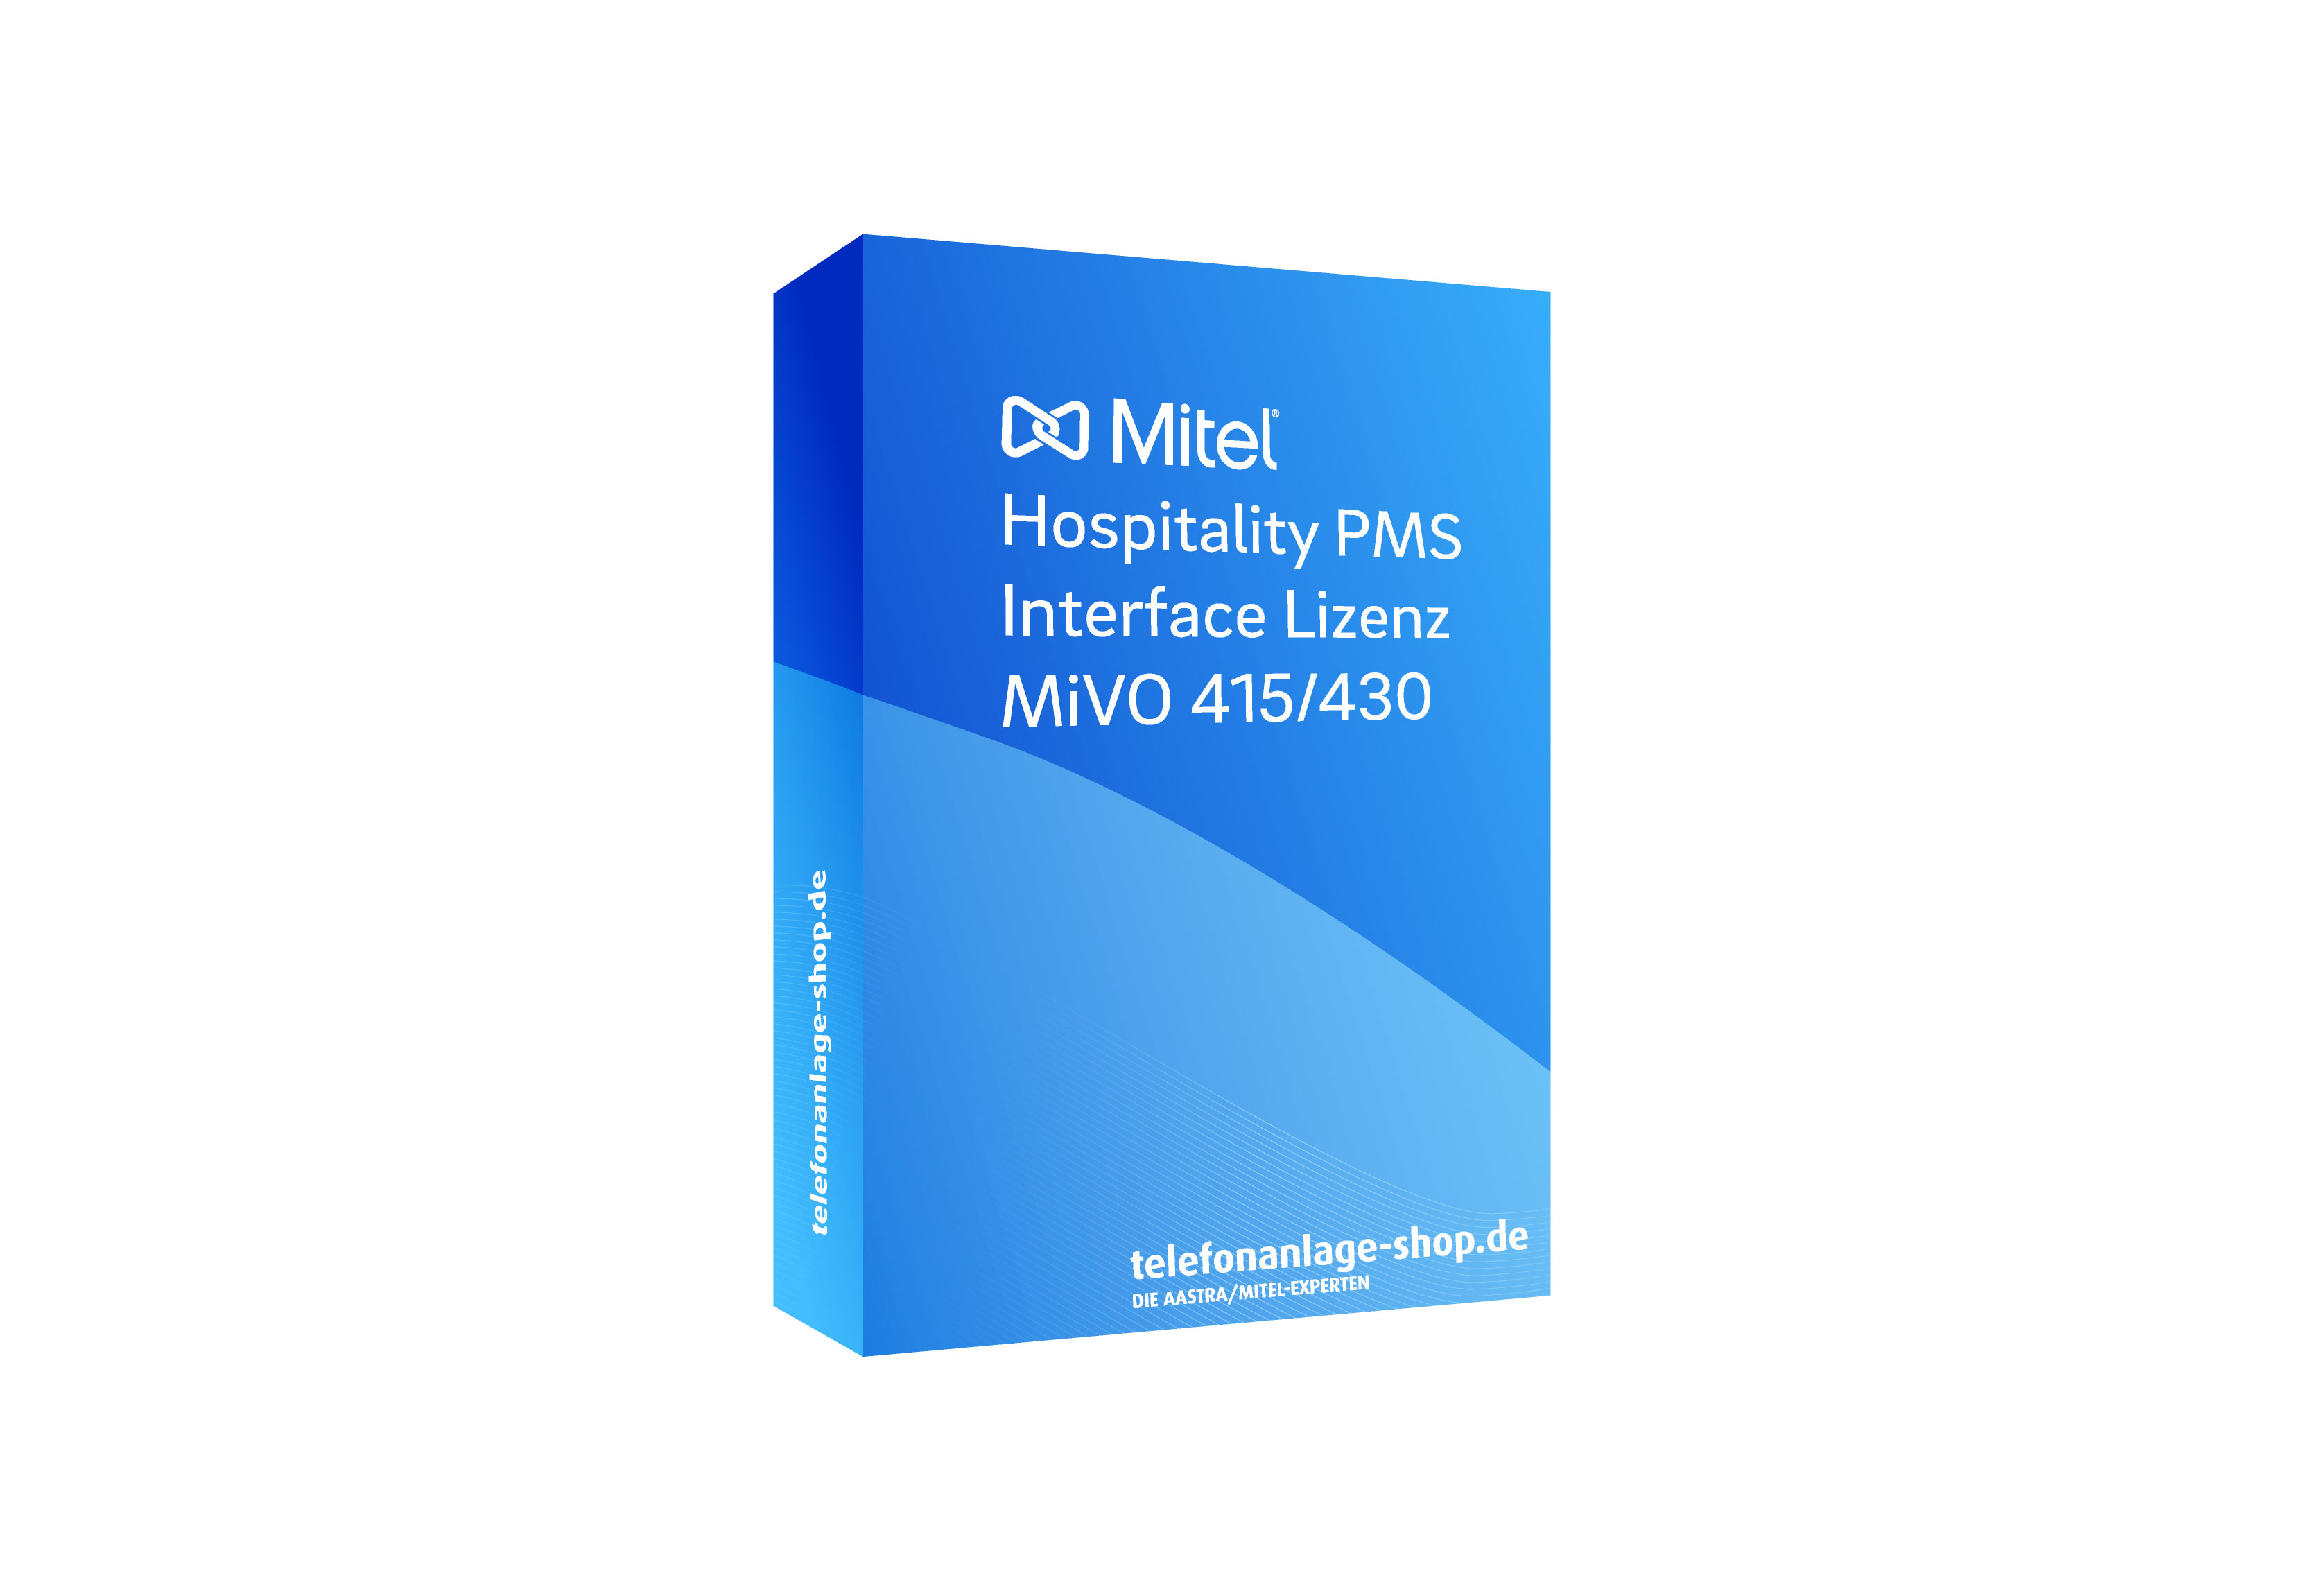 Vollansicht - Aastra Lizenz Hospitality PMS Interface 415/430